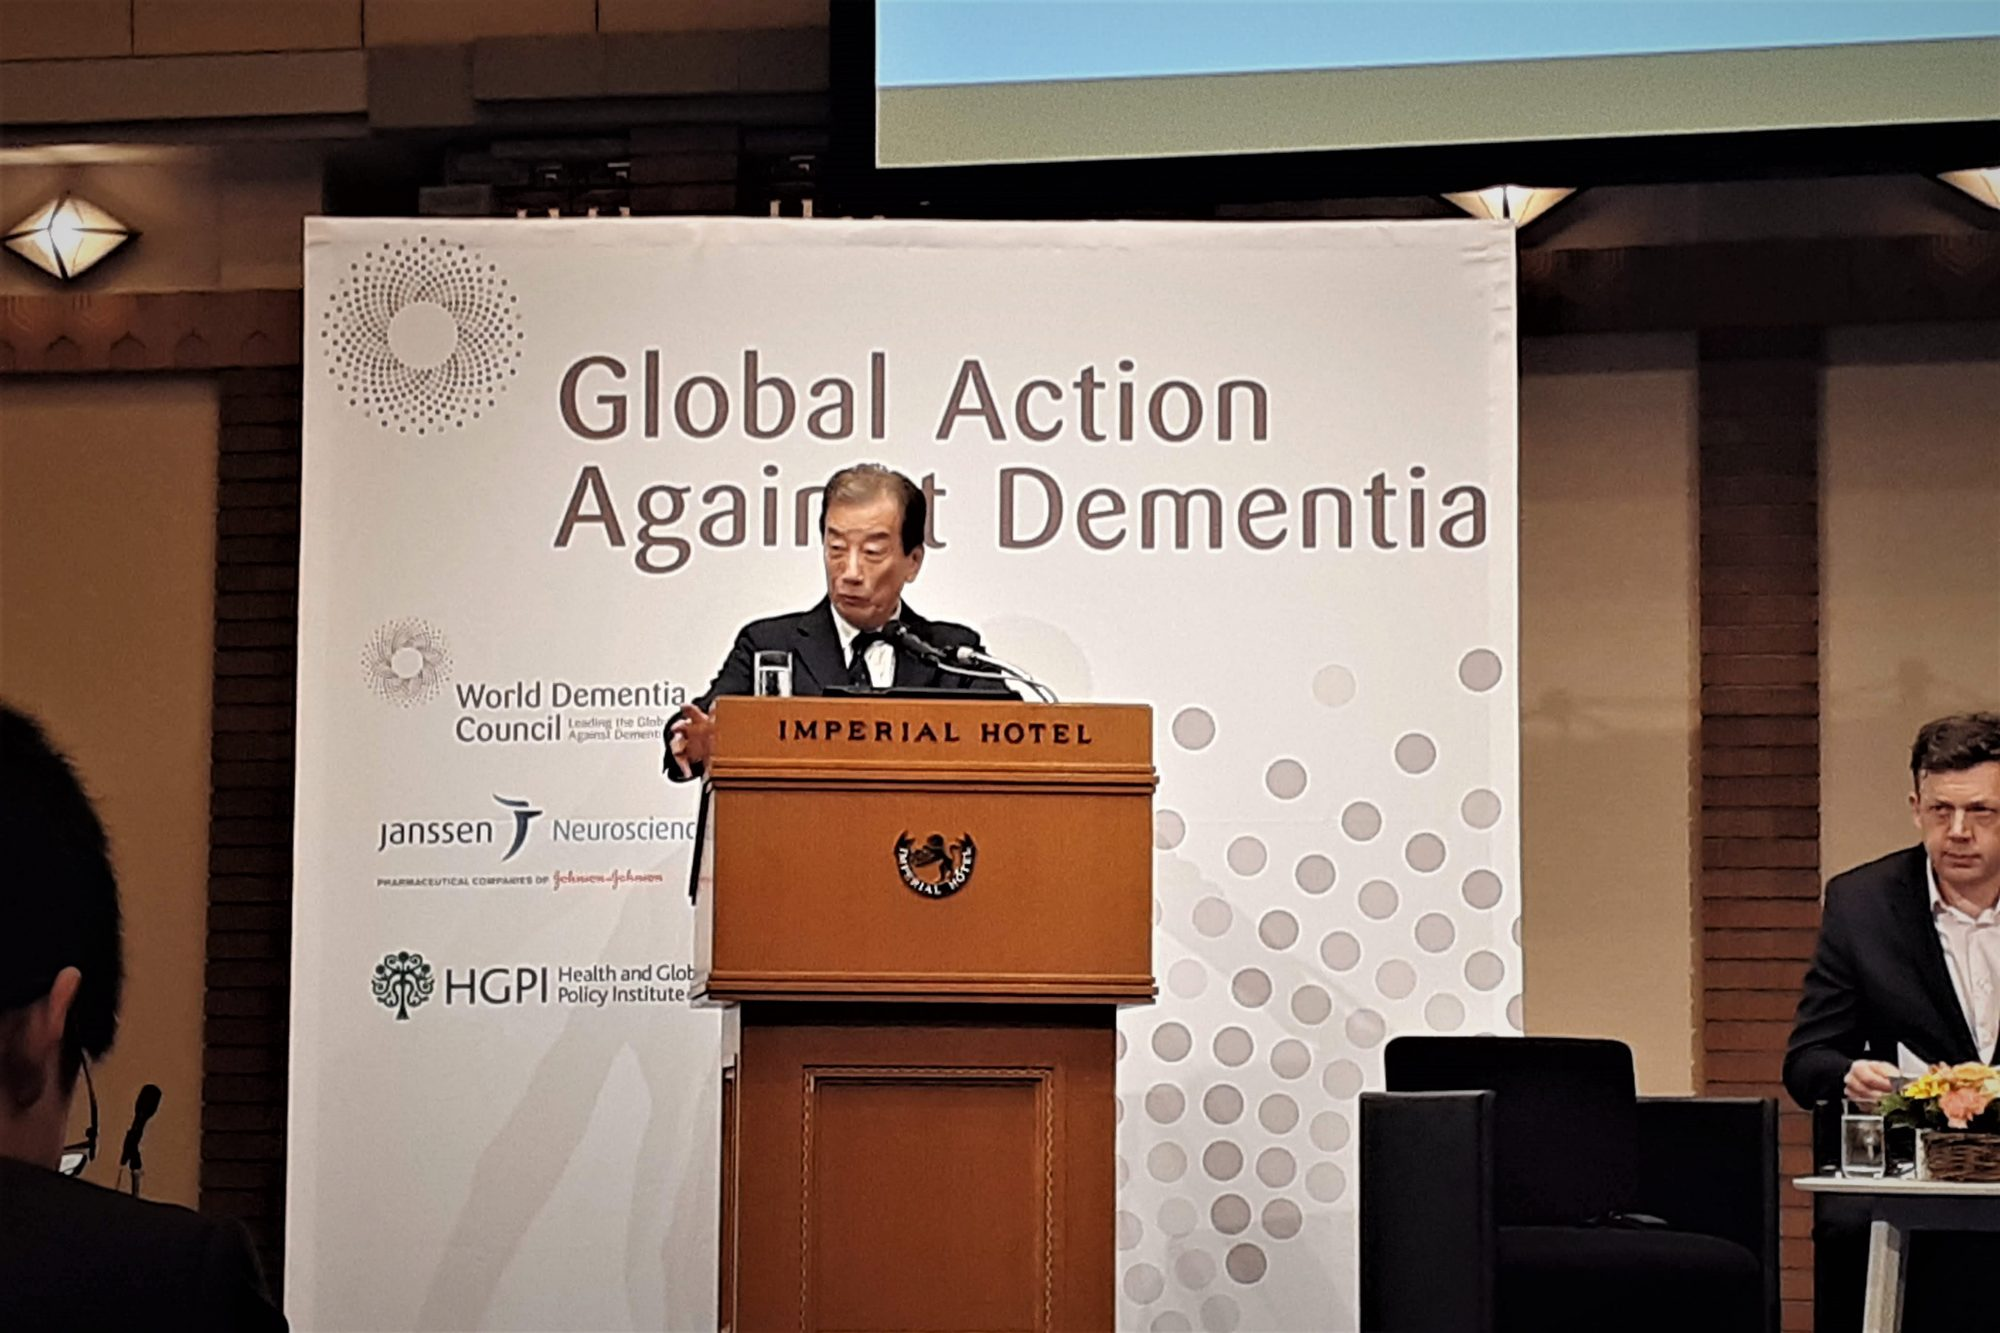 [Lecture Report] WDC Tokyo Dementia Summit 2019(Word Dementia Council, October 18, 2019, Chiyoda-ku, Tokyo)